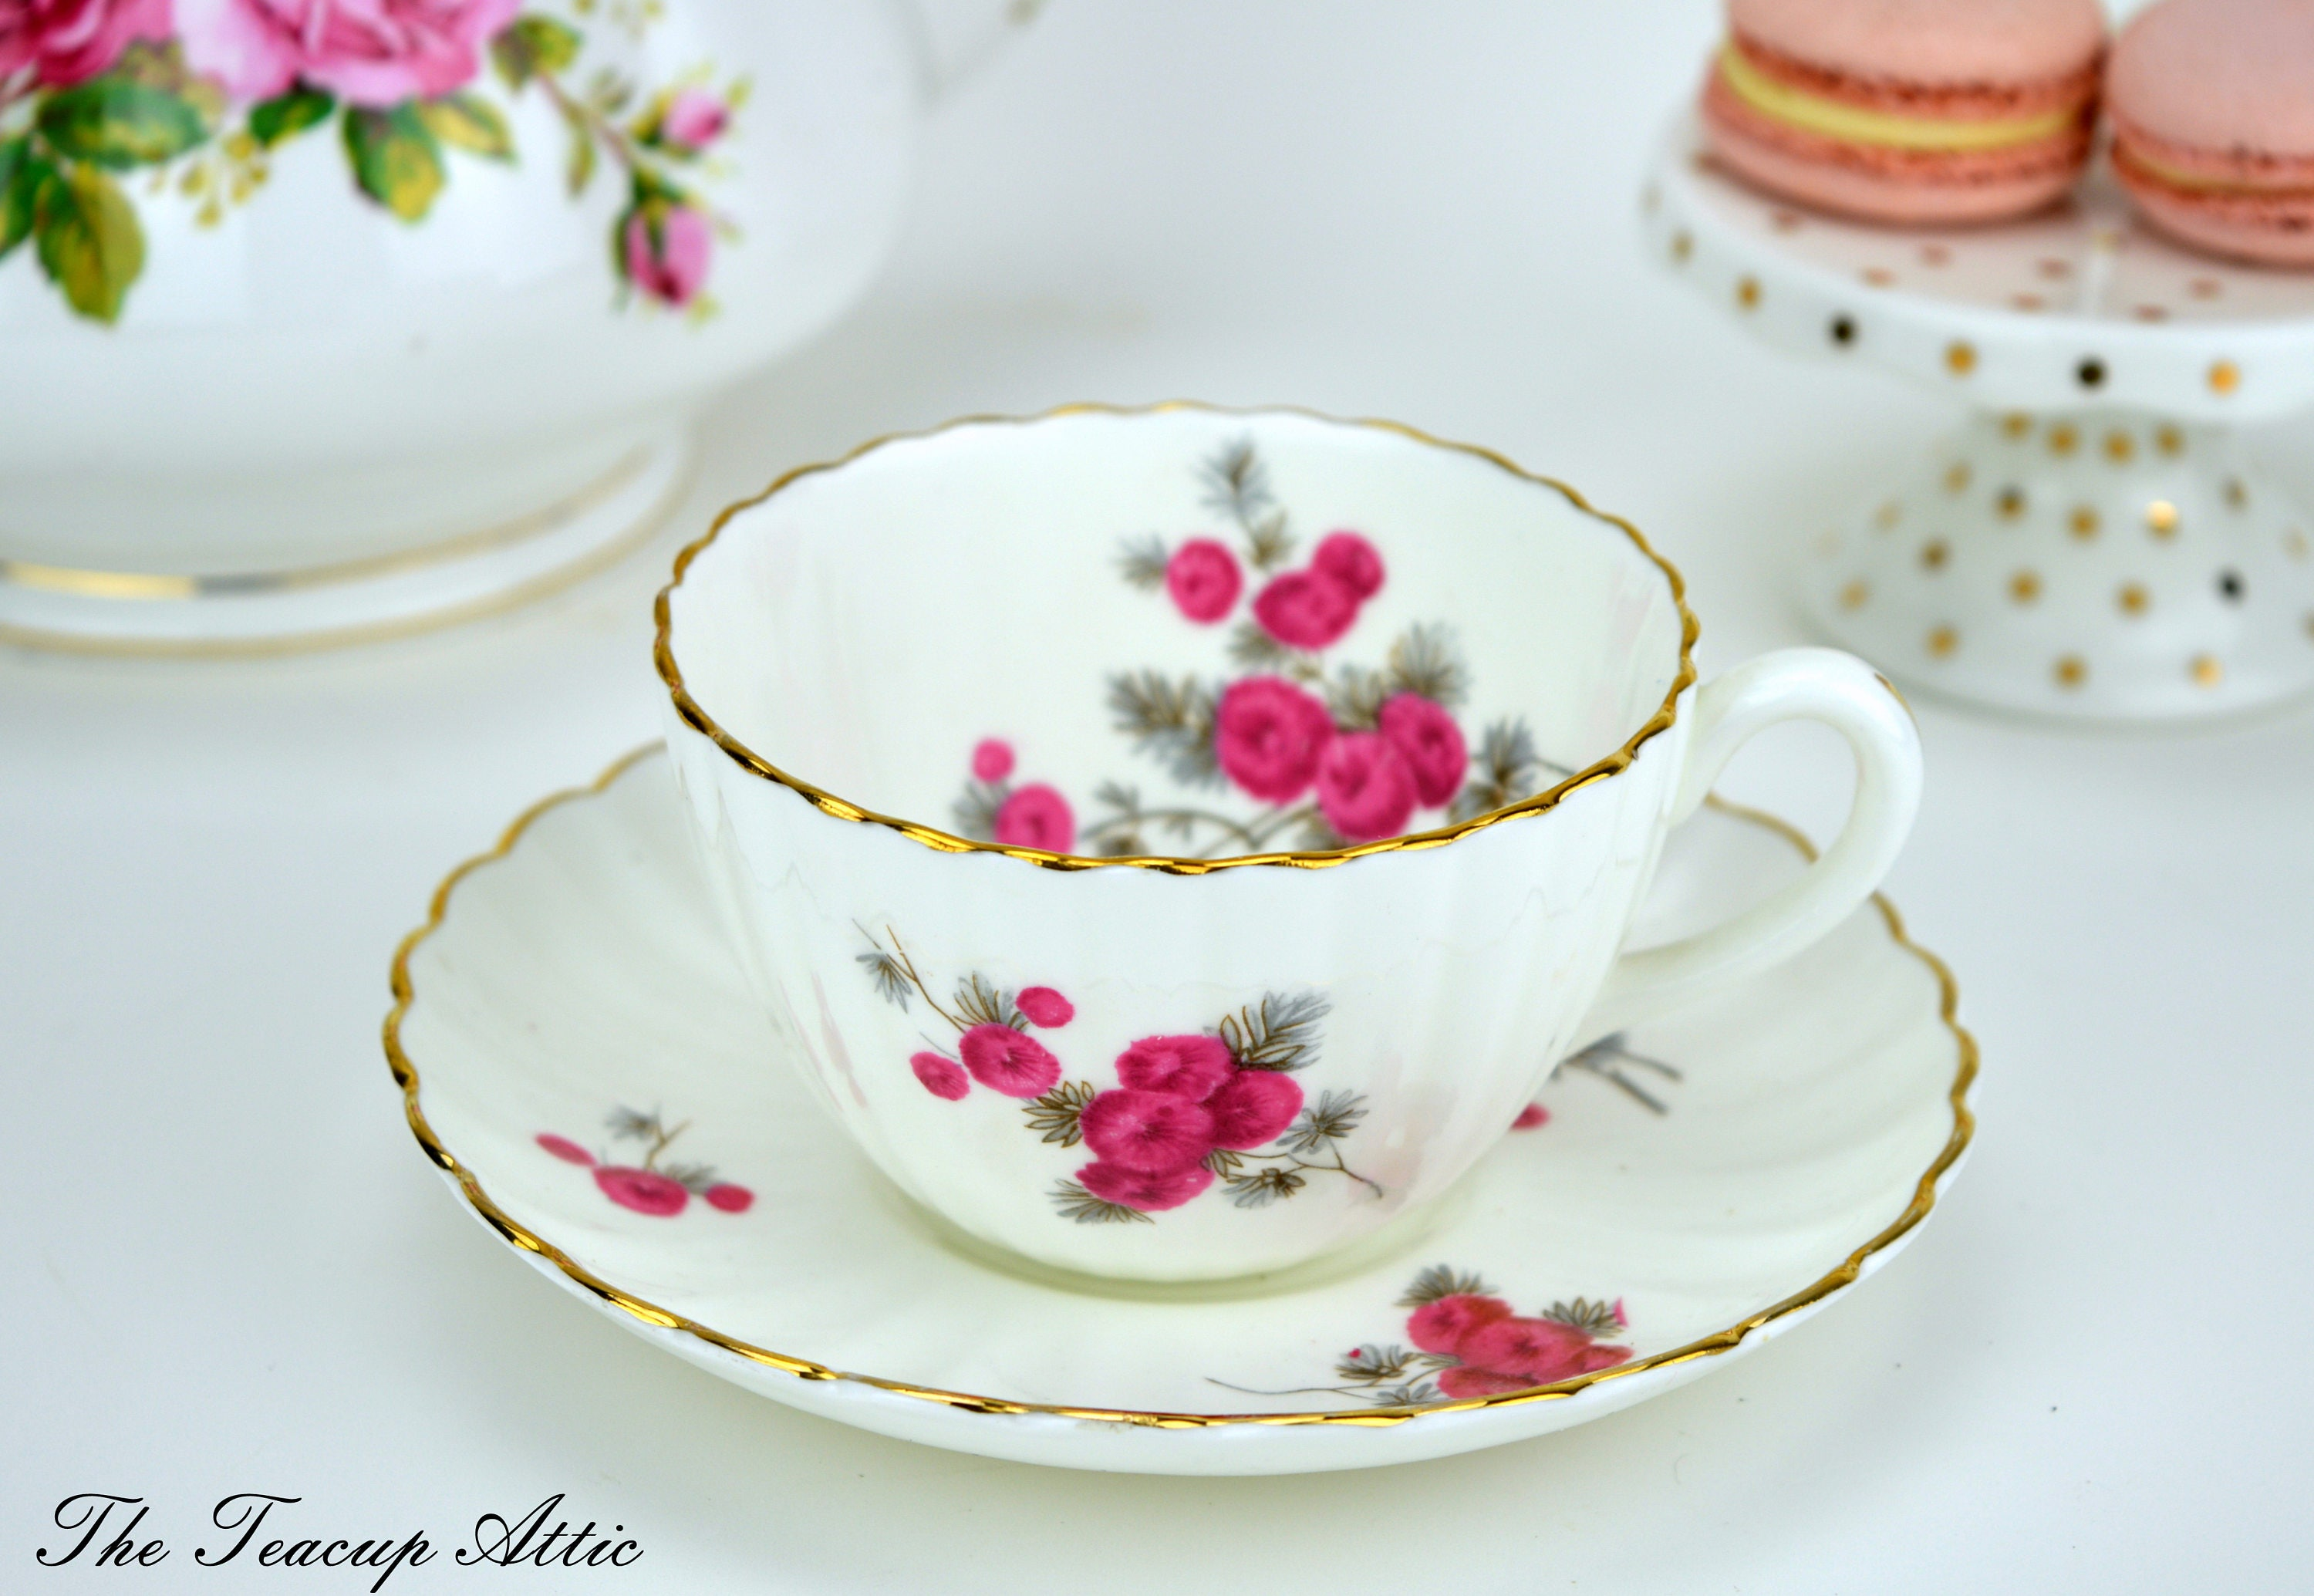 Radfords Vintage Teacup And Saucer Set With Pink Flowers, English Bone China Tea Cup Set, Garden Tea Party, ca 1938-1957